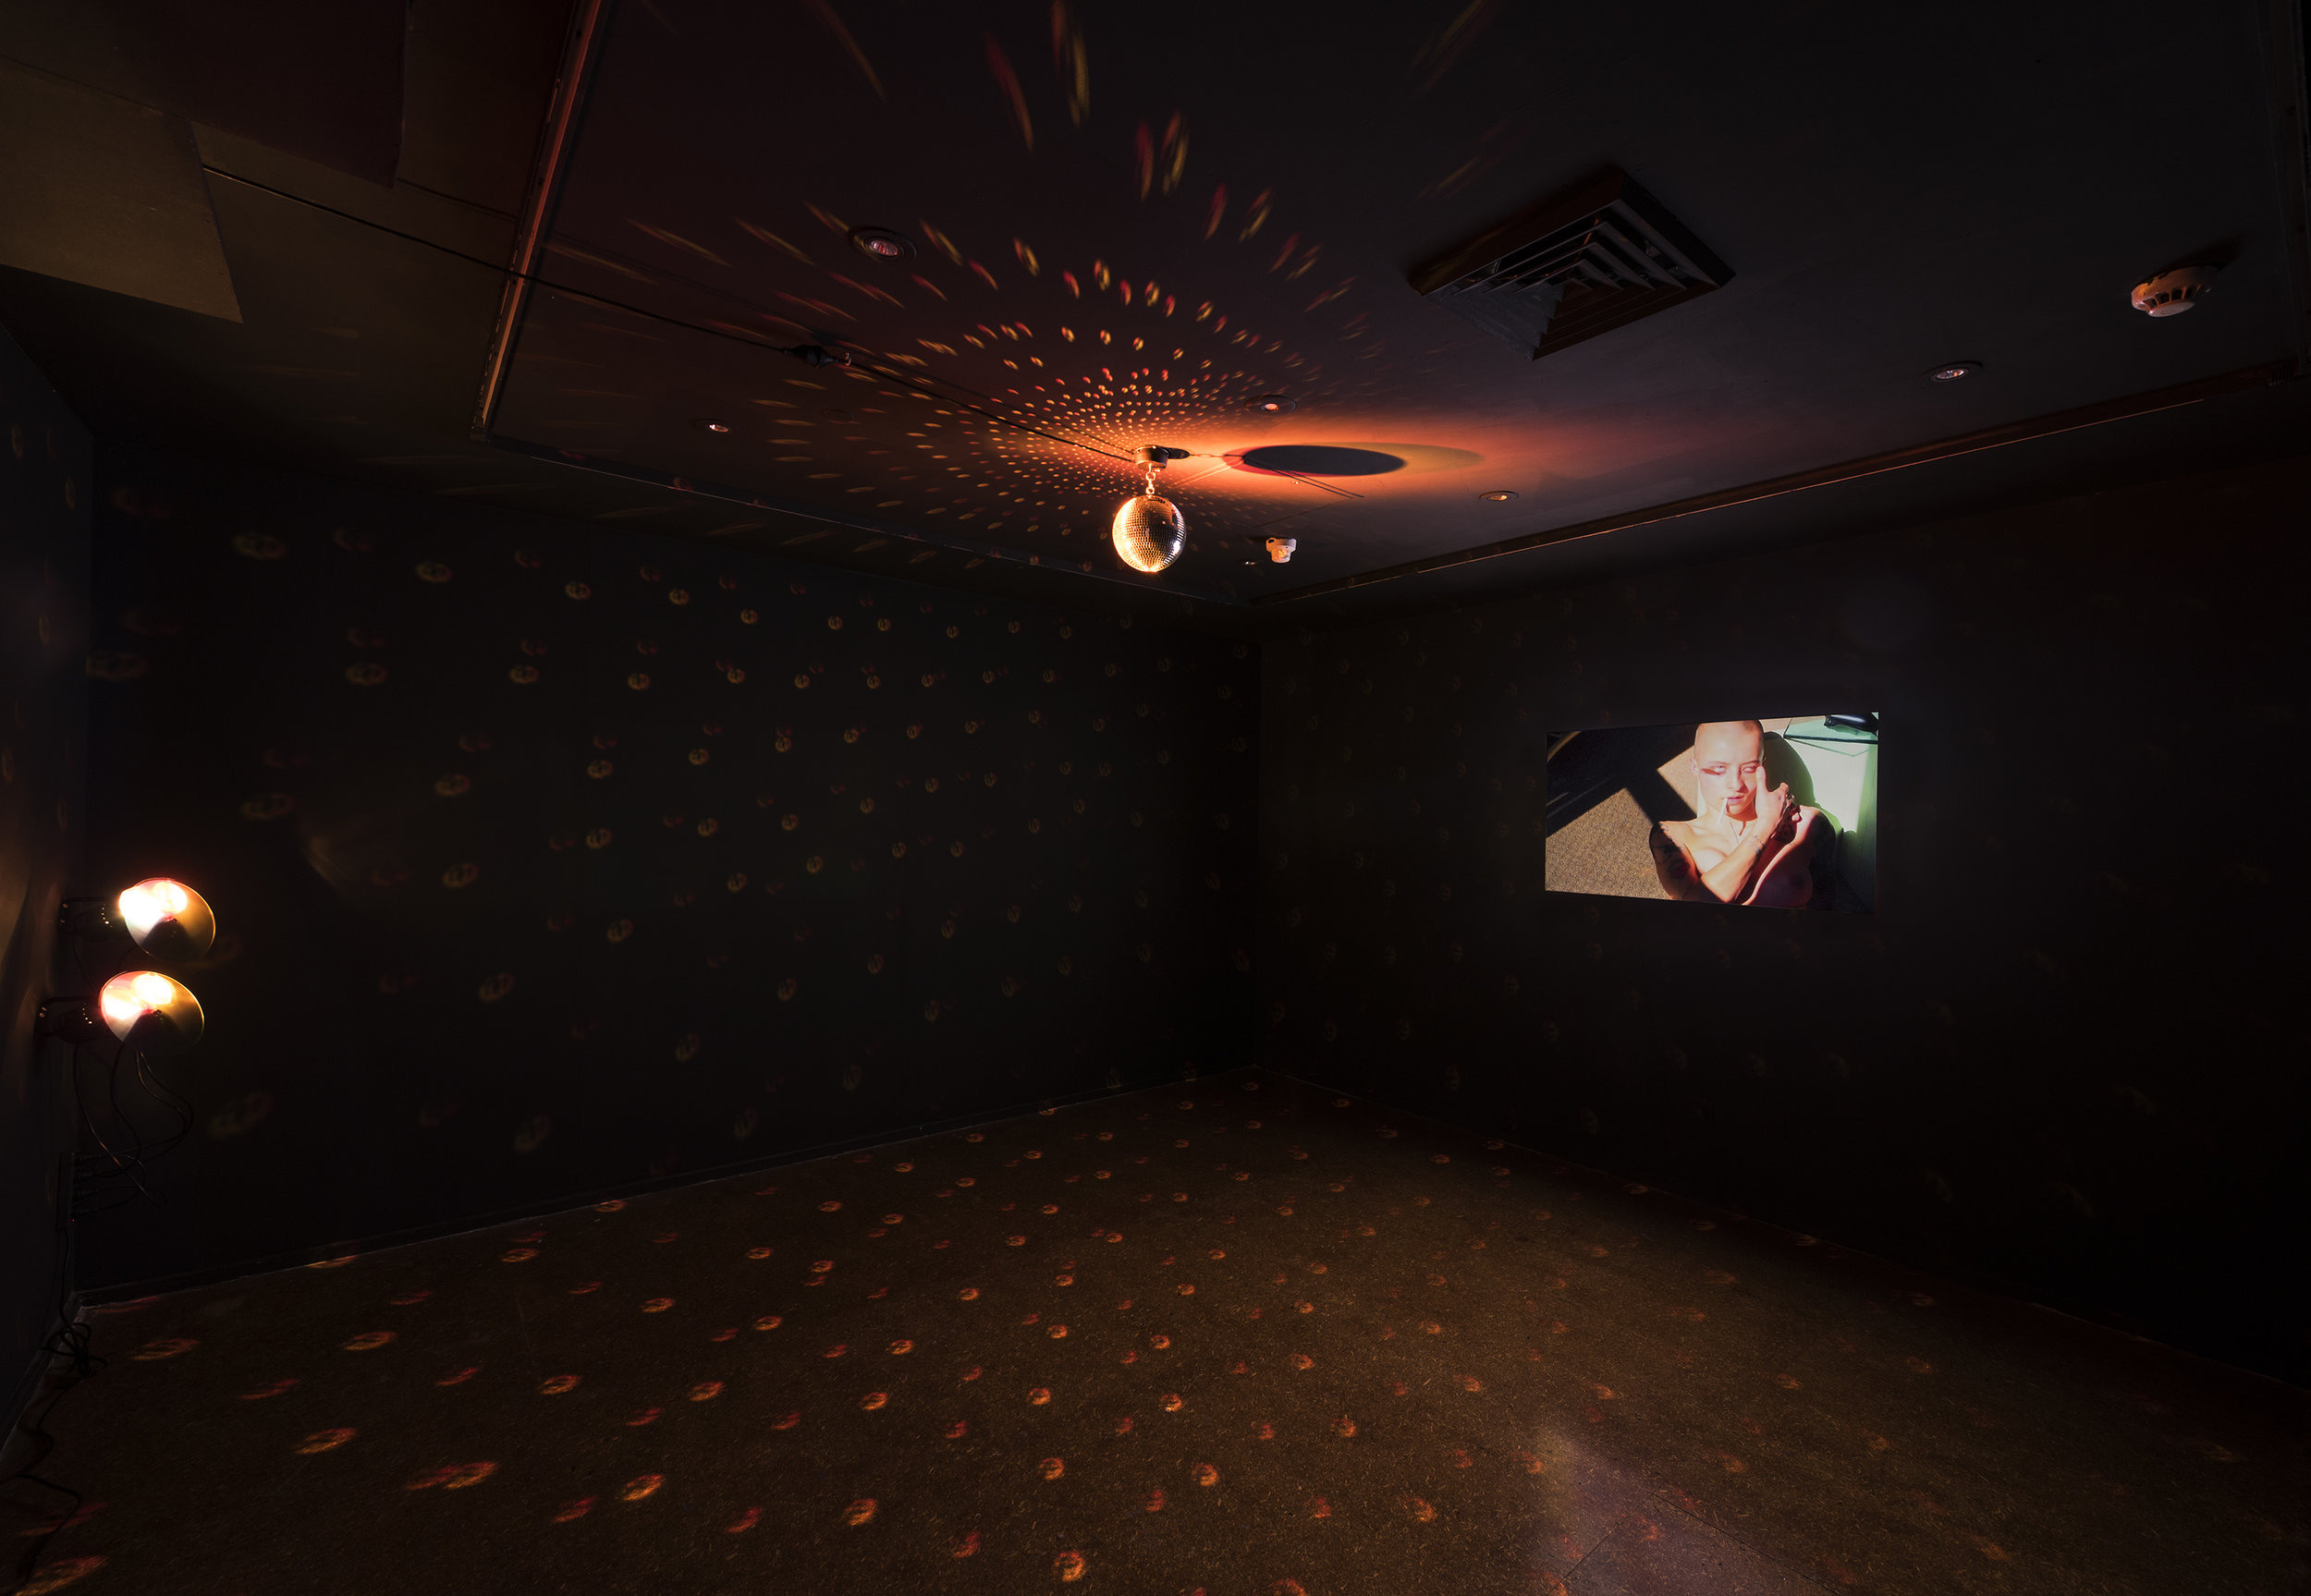 Jordana Bragg,  Enthusiastic Valentine,  2019, installation view, 'Tainted Love', Canberra Contemporary Art Space (CCAS), 2019; HD video, mirror ball and disco lighting, 3:30 mins duration; courtesy the artist and CCAS, Canberra; photo: Brenton McGeachie